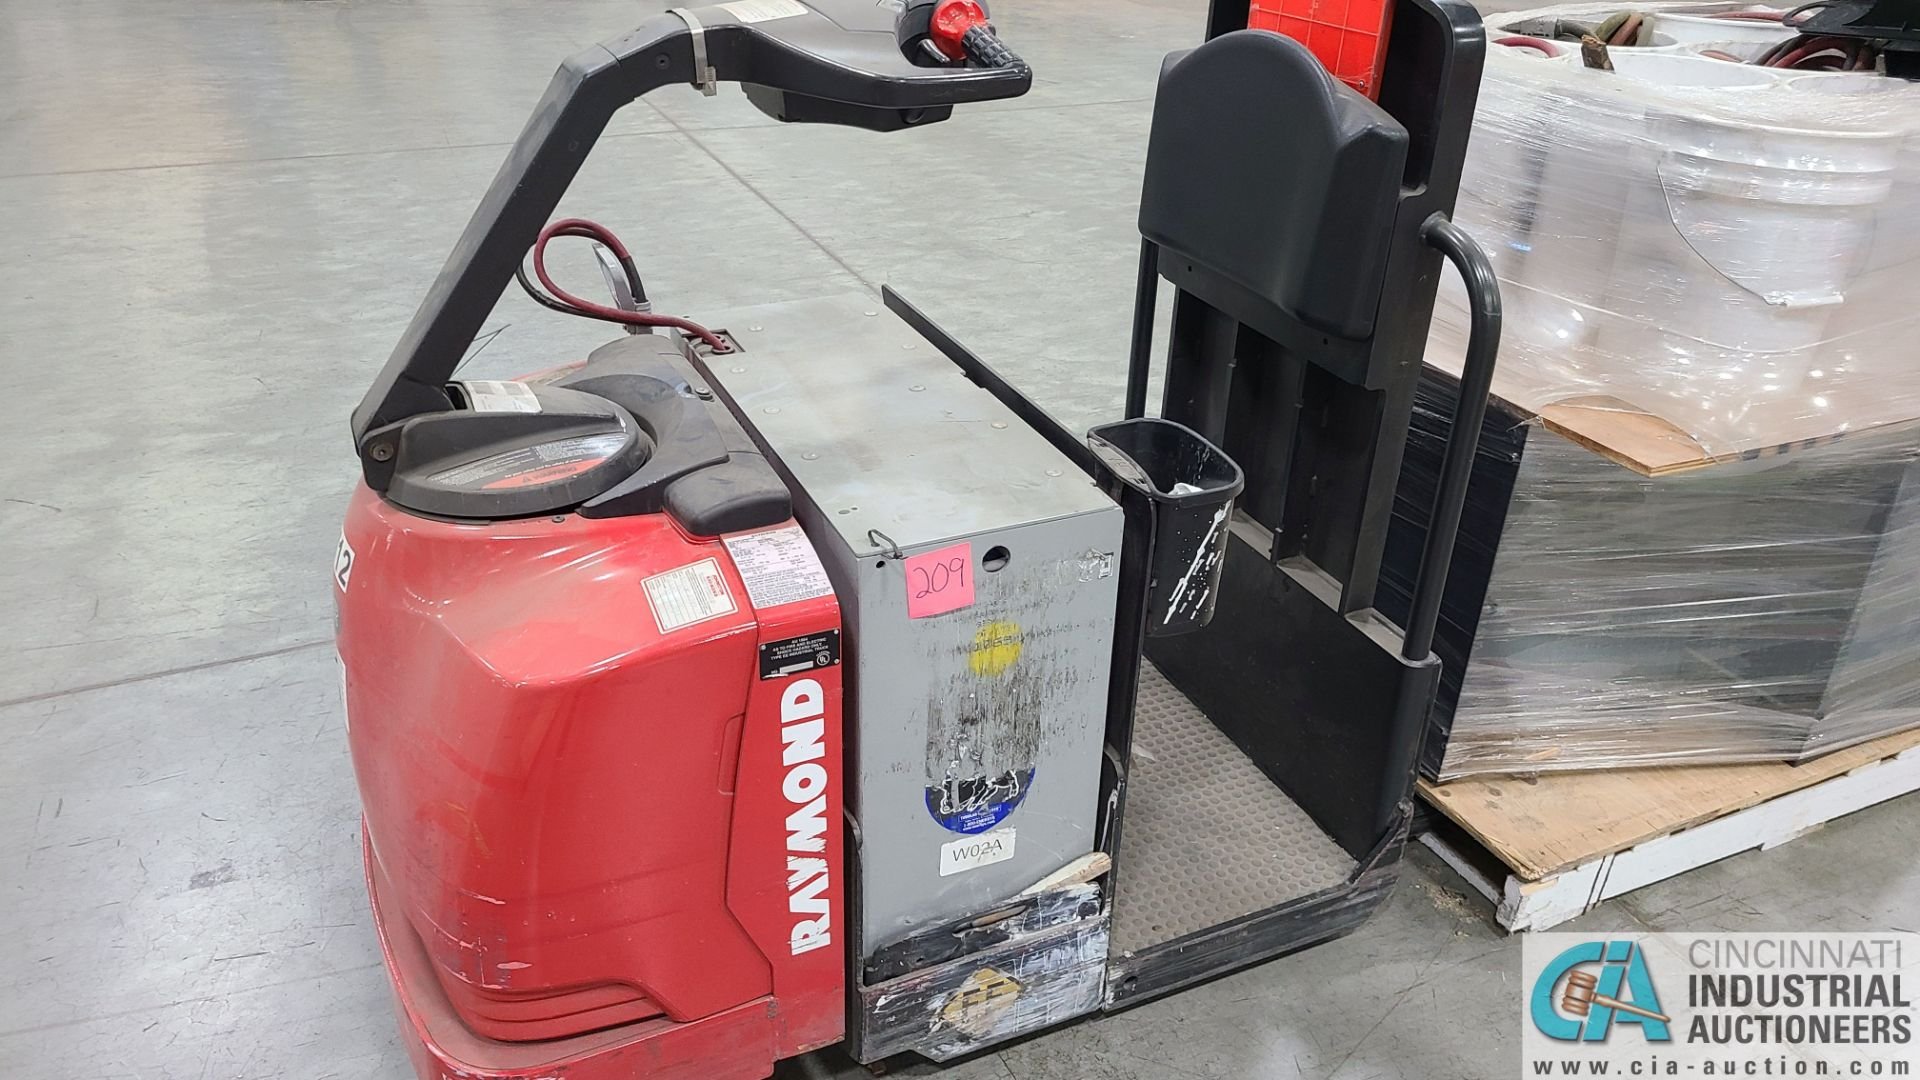 RAYMOND MODEL 8510 ELECTRIC PALLET TRUCK; S/N 851-15-11748, W/ BATTERY, HOURS N/A (NEW 2015) (2570 - Image 2 of 4